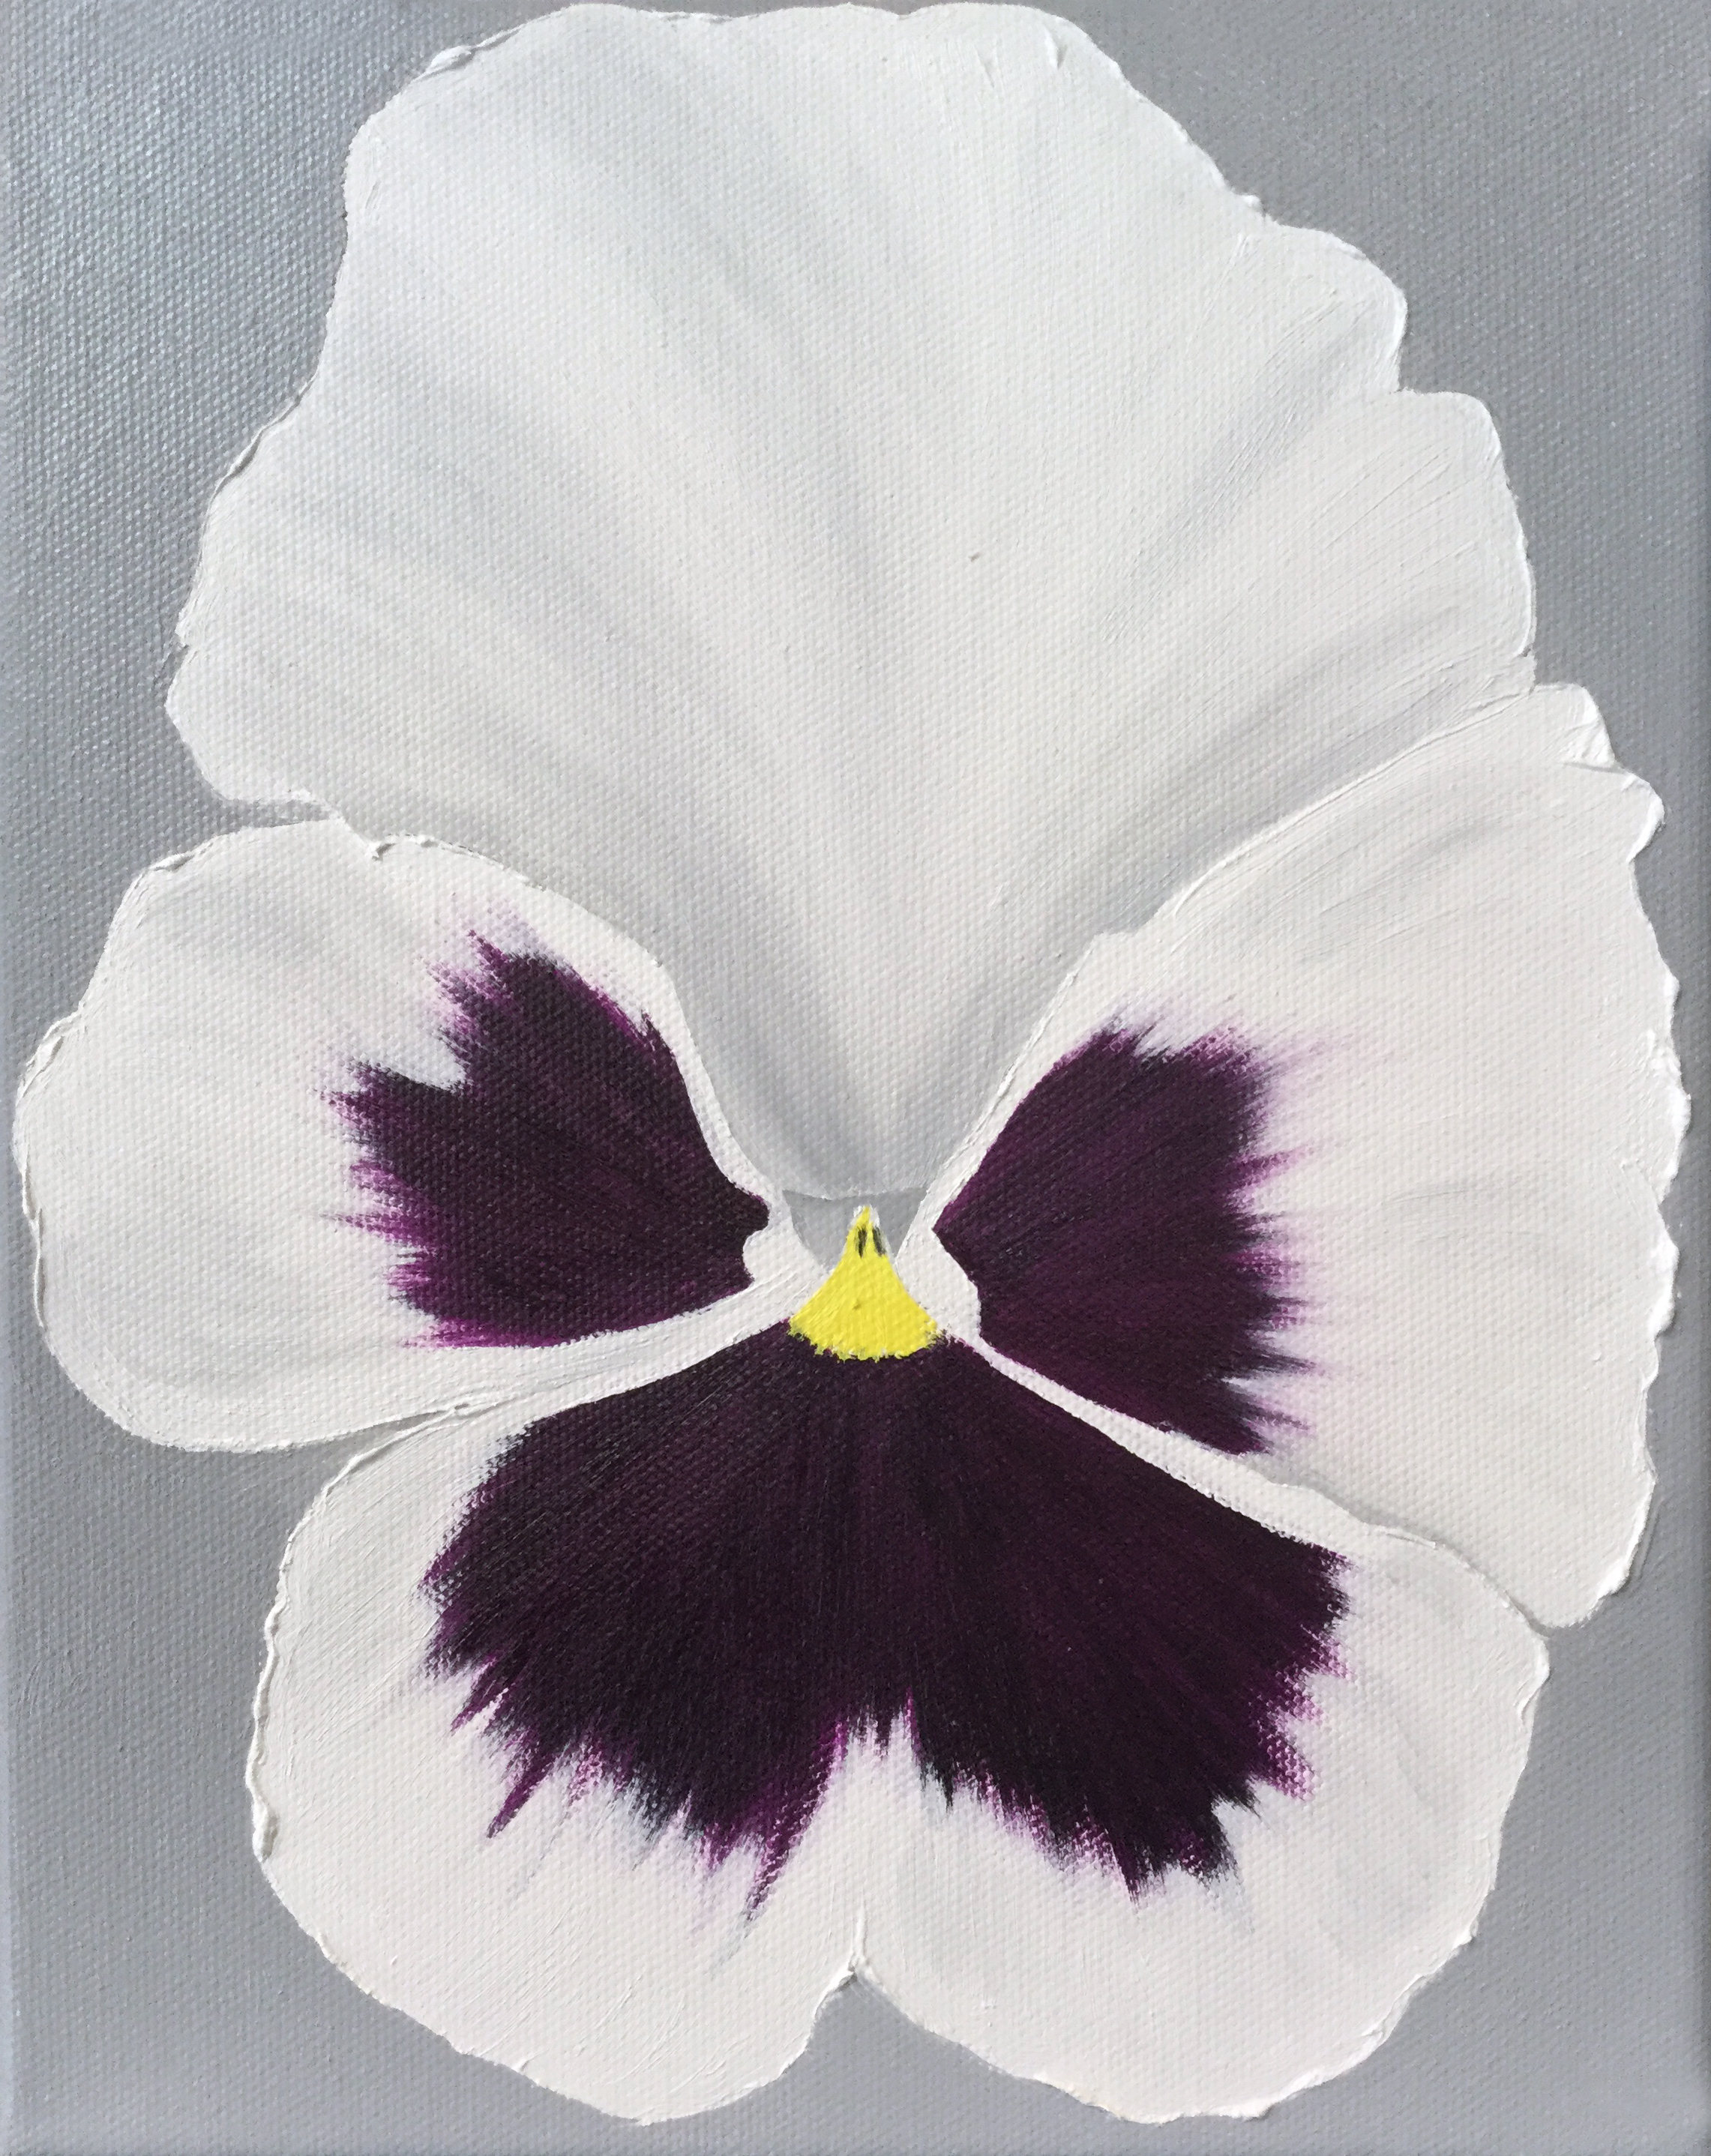 Pansy  2017 Oil on canvas 24 x 18 x 1.5 inches